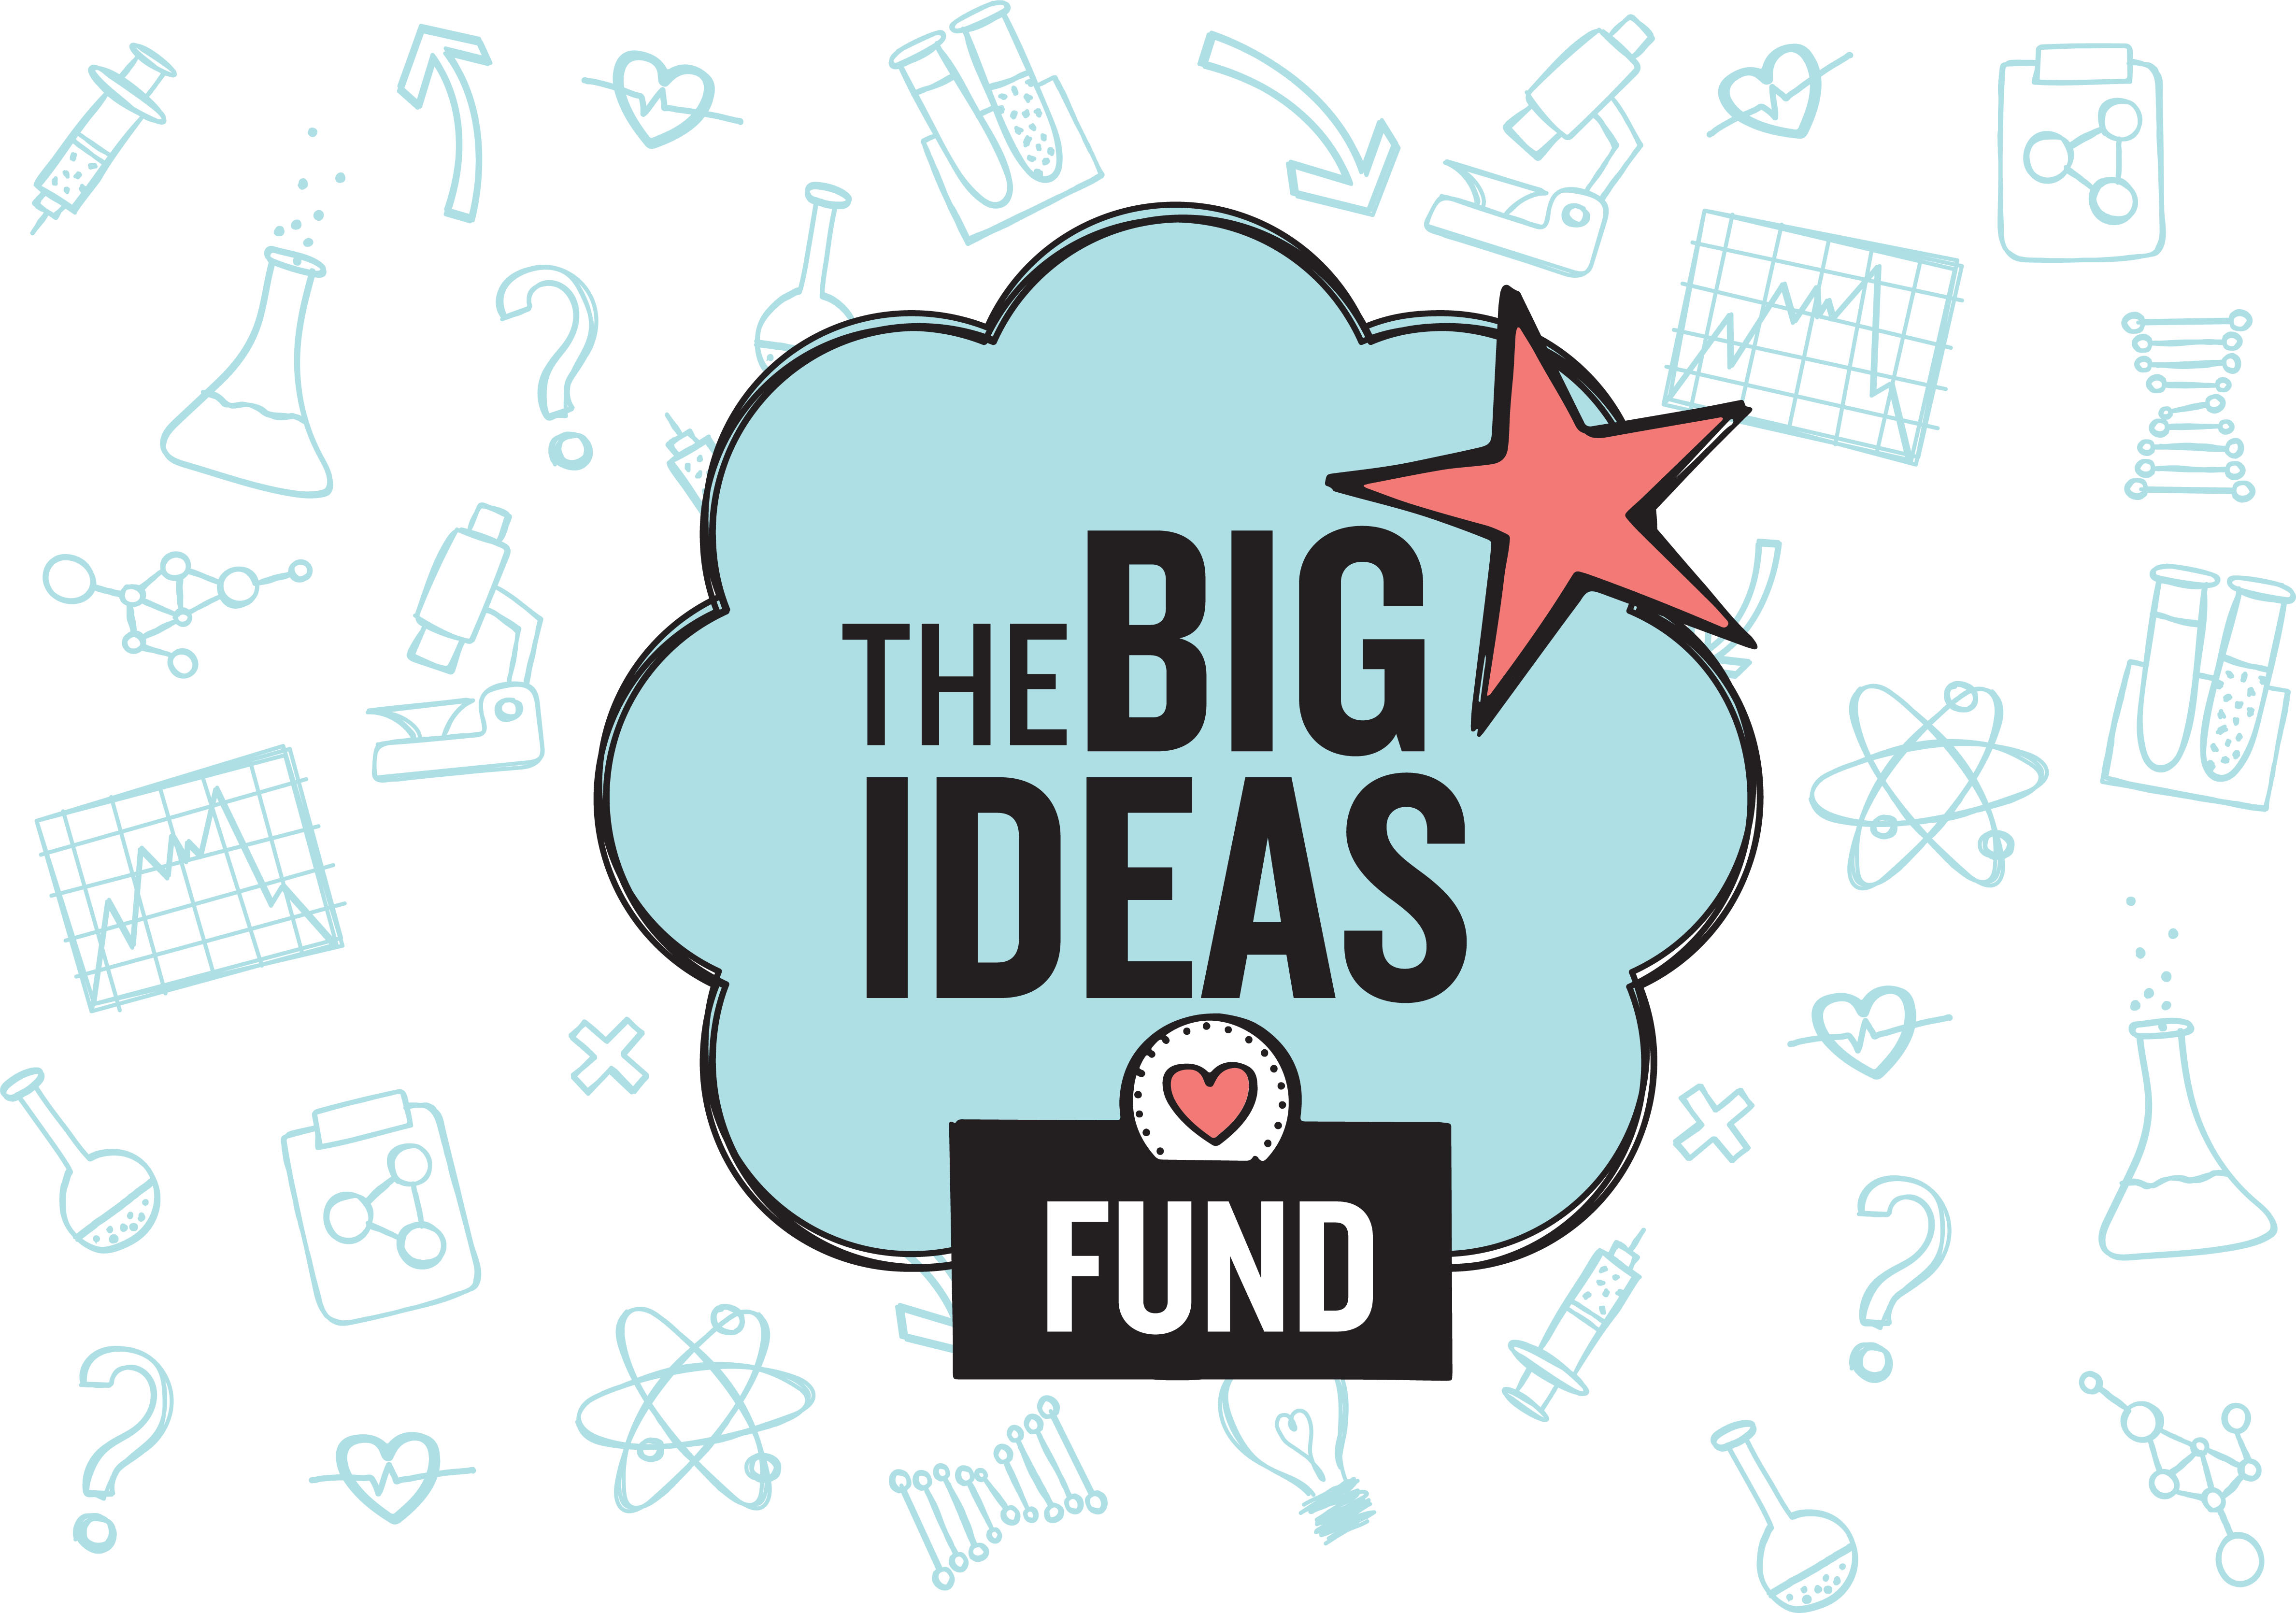 The Big Ideas Fund Logo with Icons